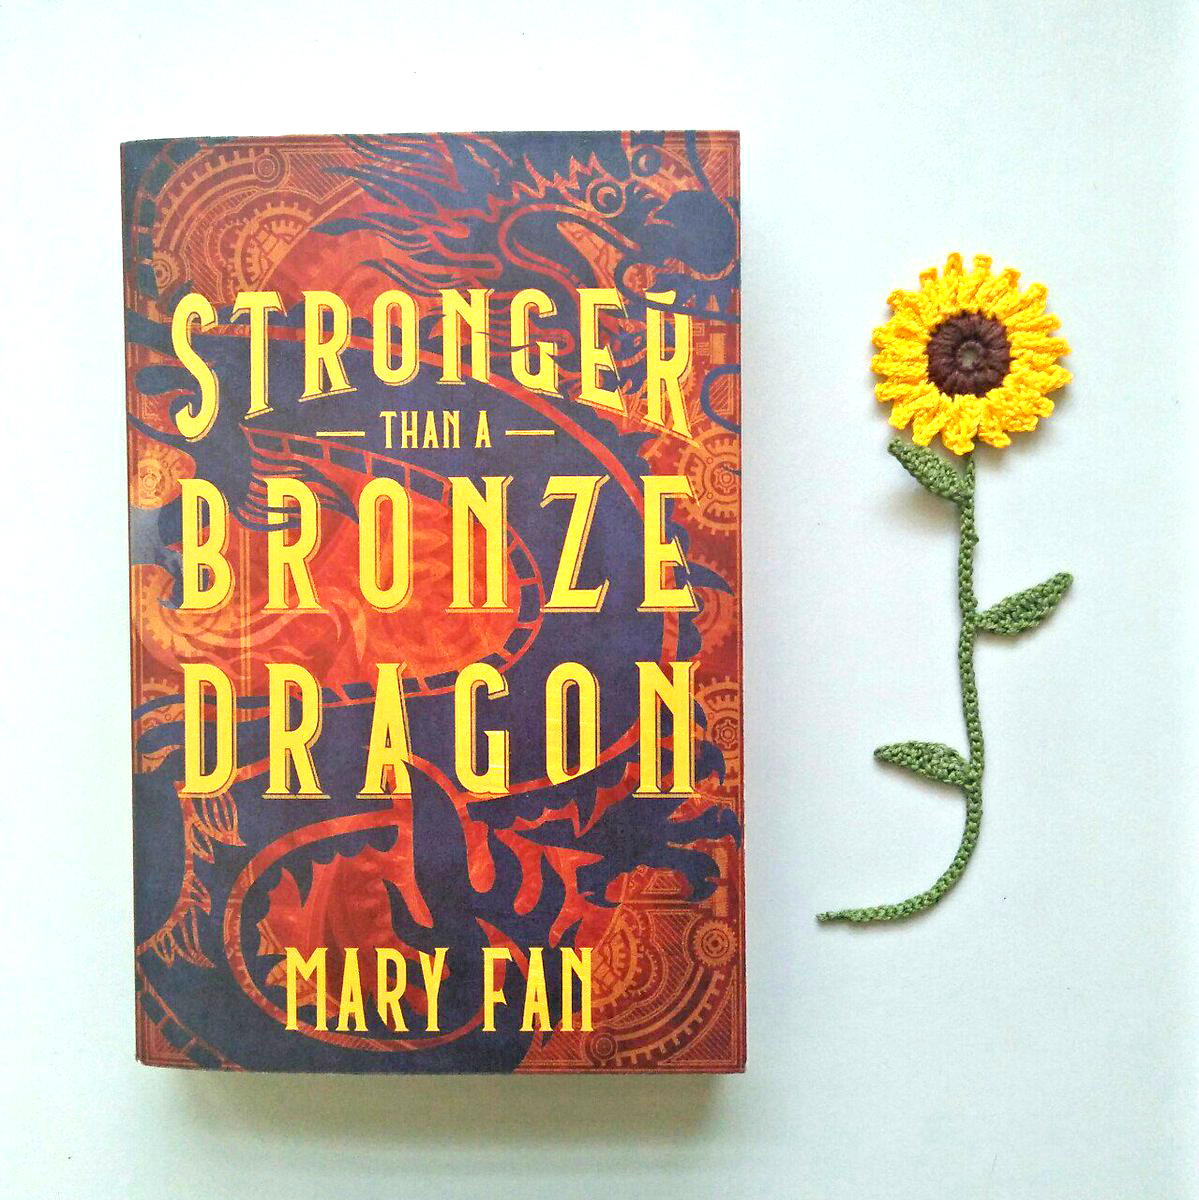 Physical ARC of Stronger Than a Bronze Dragon by Mary Fan